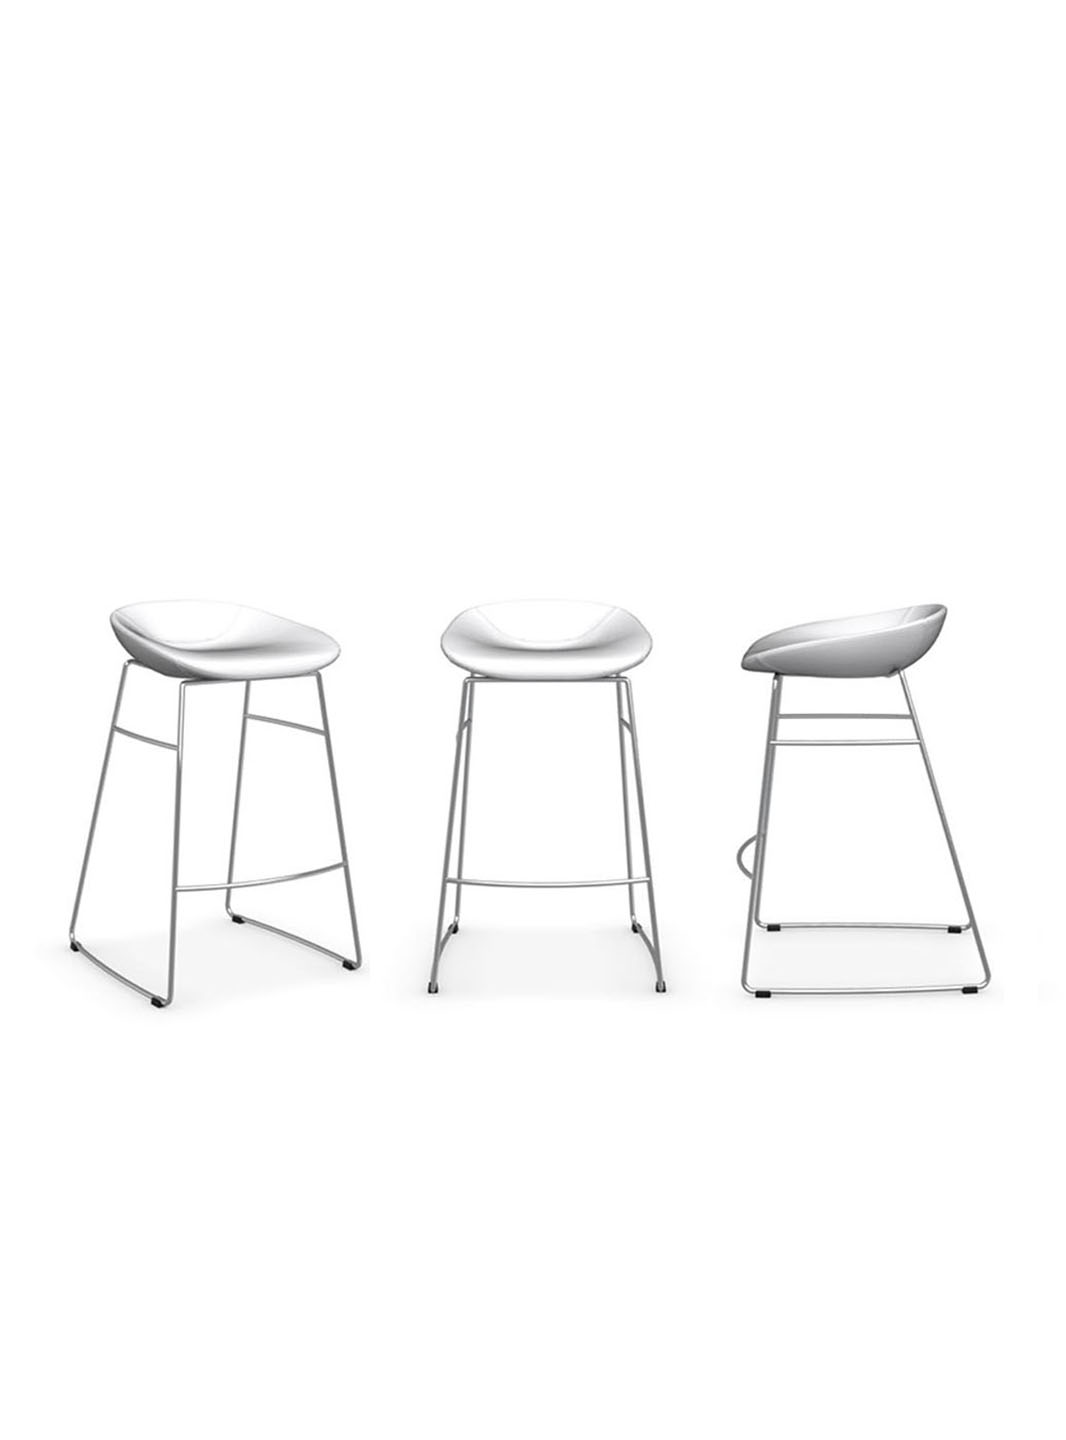 Palm tabouret calligaris cs 1822 sk mariette clermont for Calligaris soldes